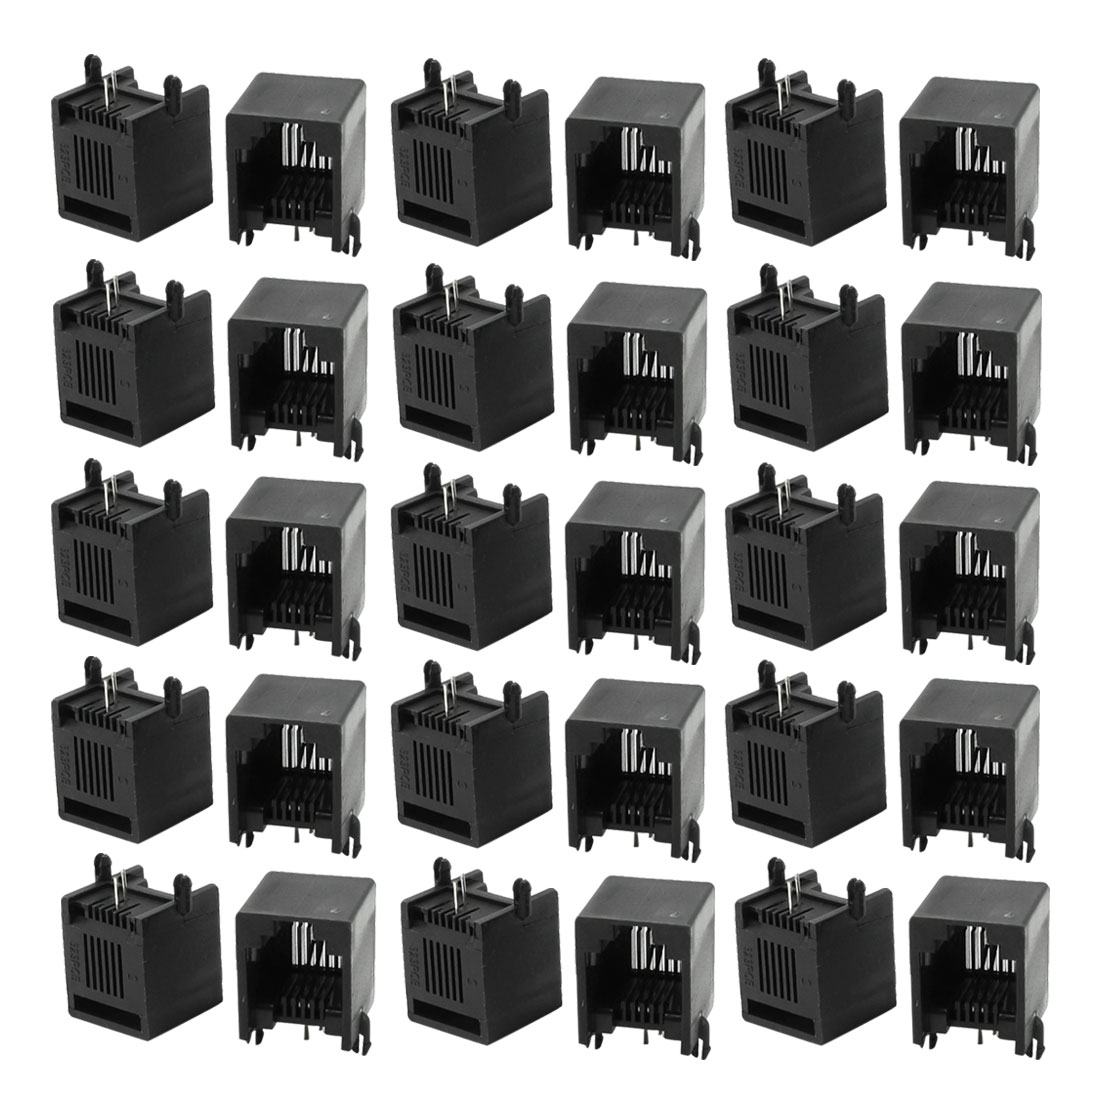 30Pcs RJ11 6P2C PCB Jacks Telephone Line Plastic Sockets 13 x 12 x 14mm